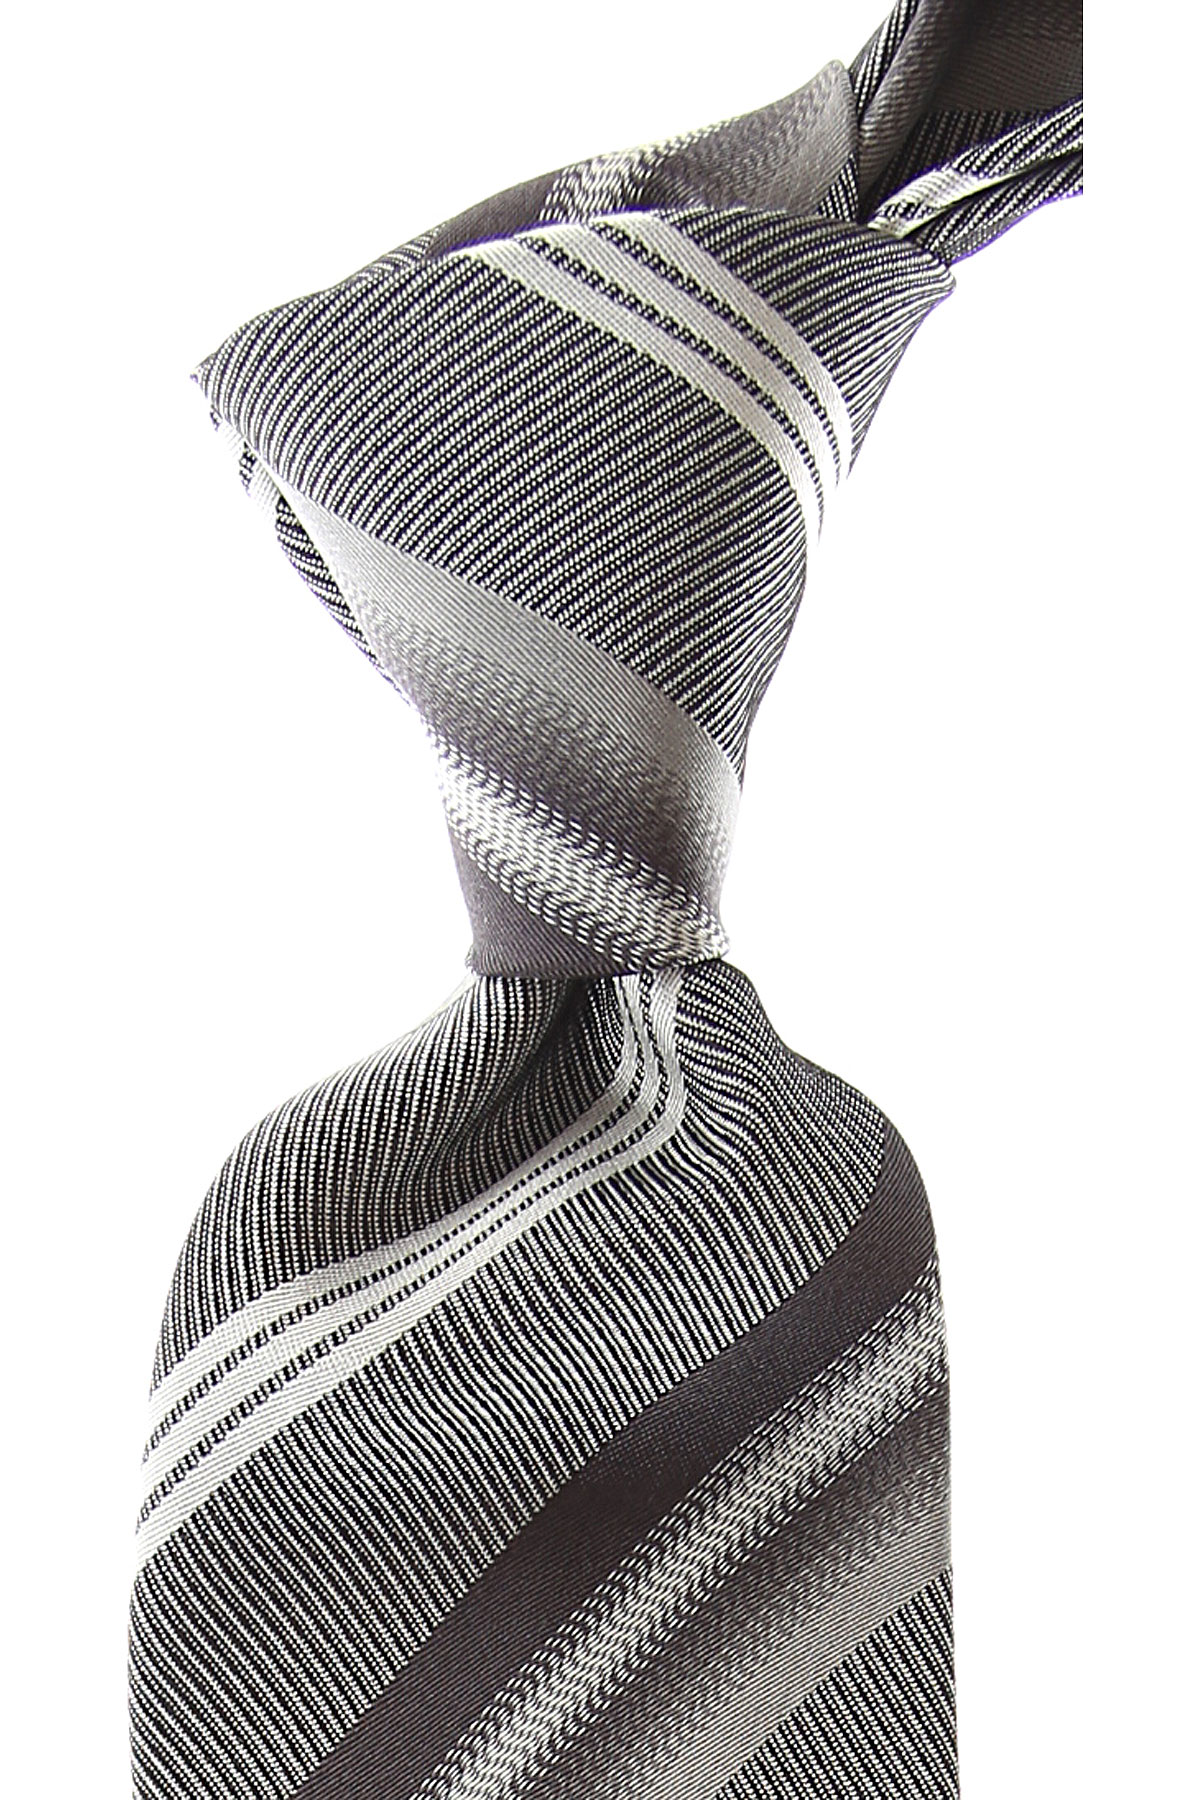 Giorgio_Armani_Ties_On_Sale_Light_Grey_Silk_2019